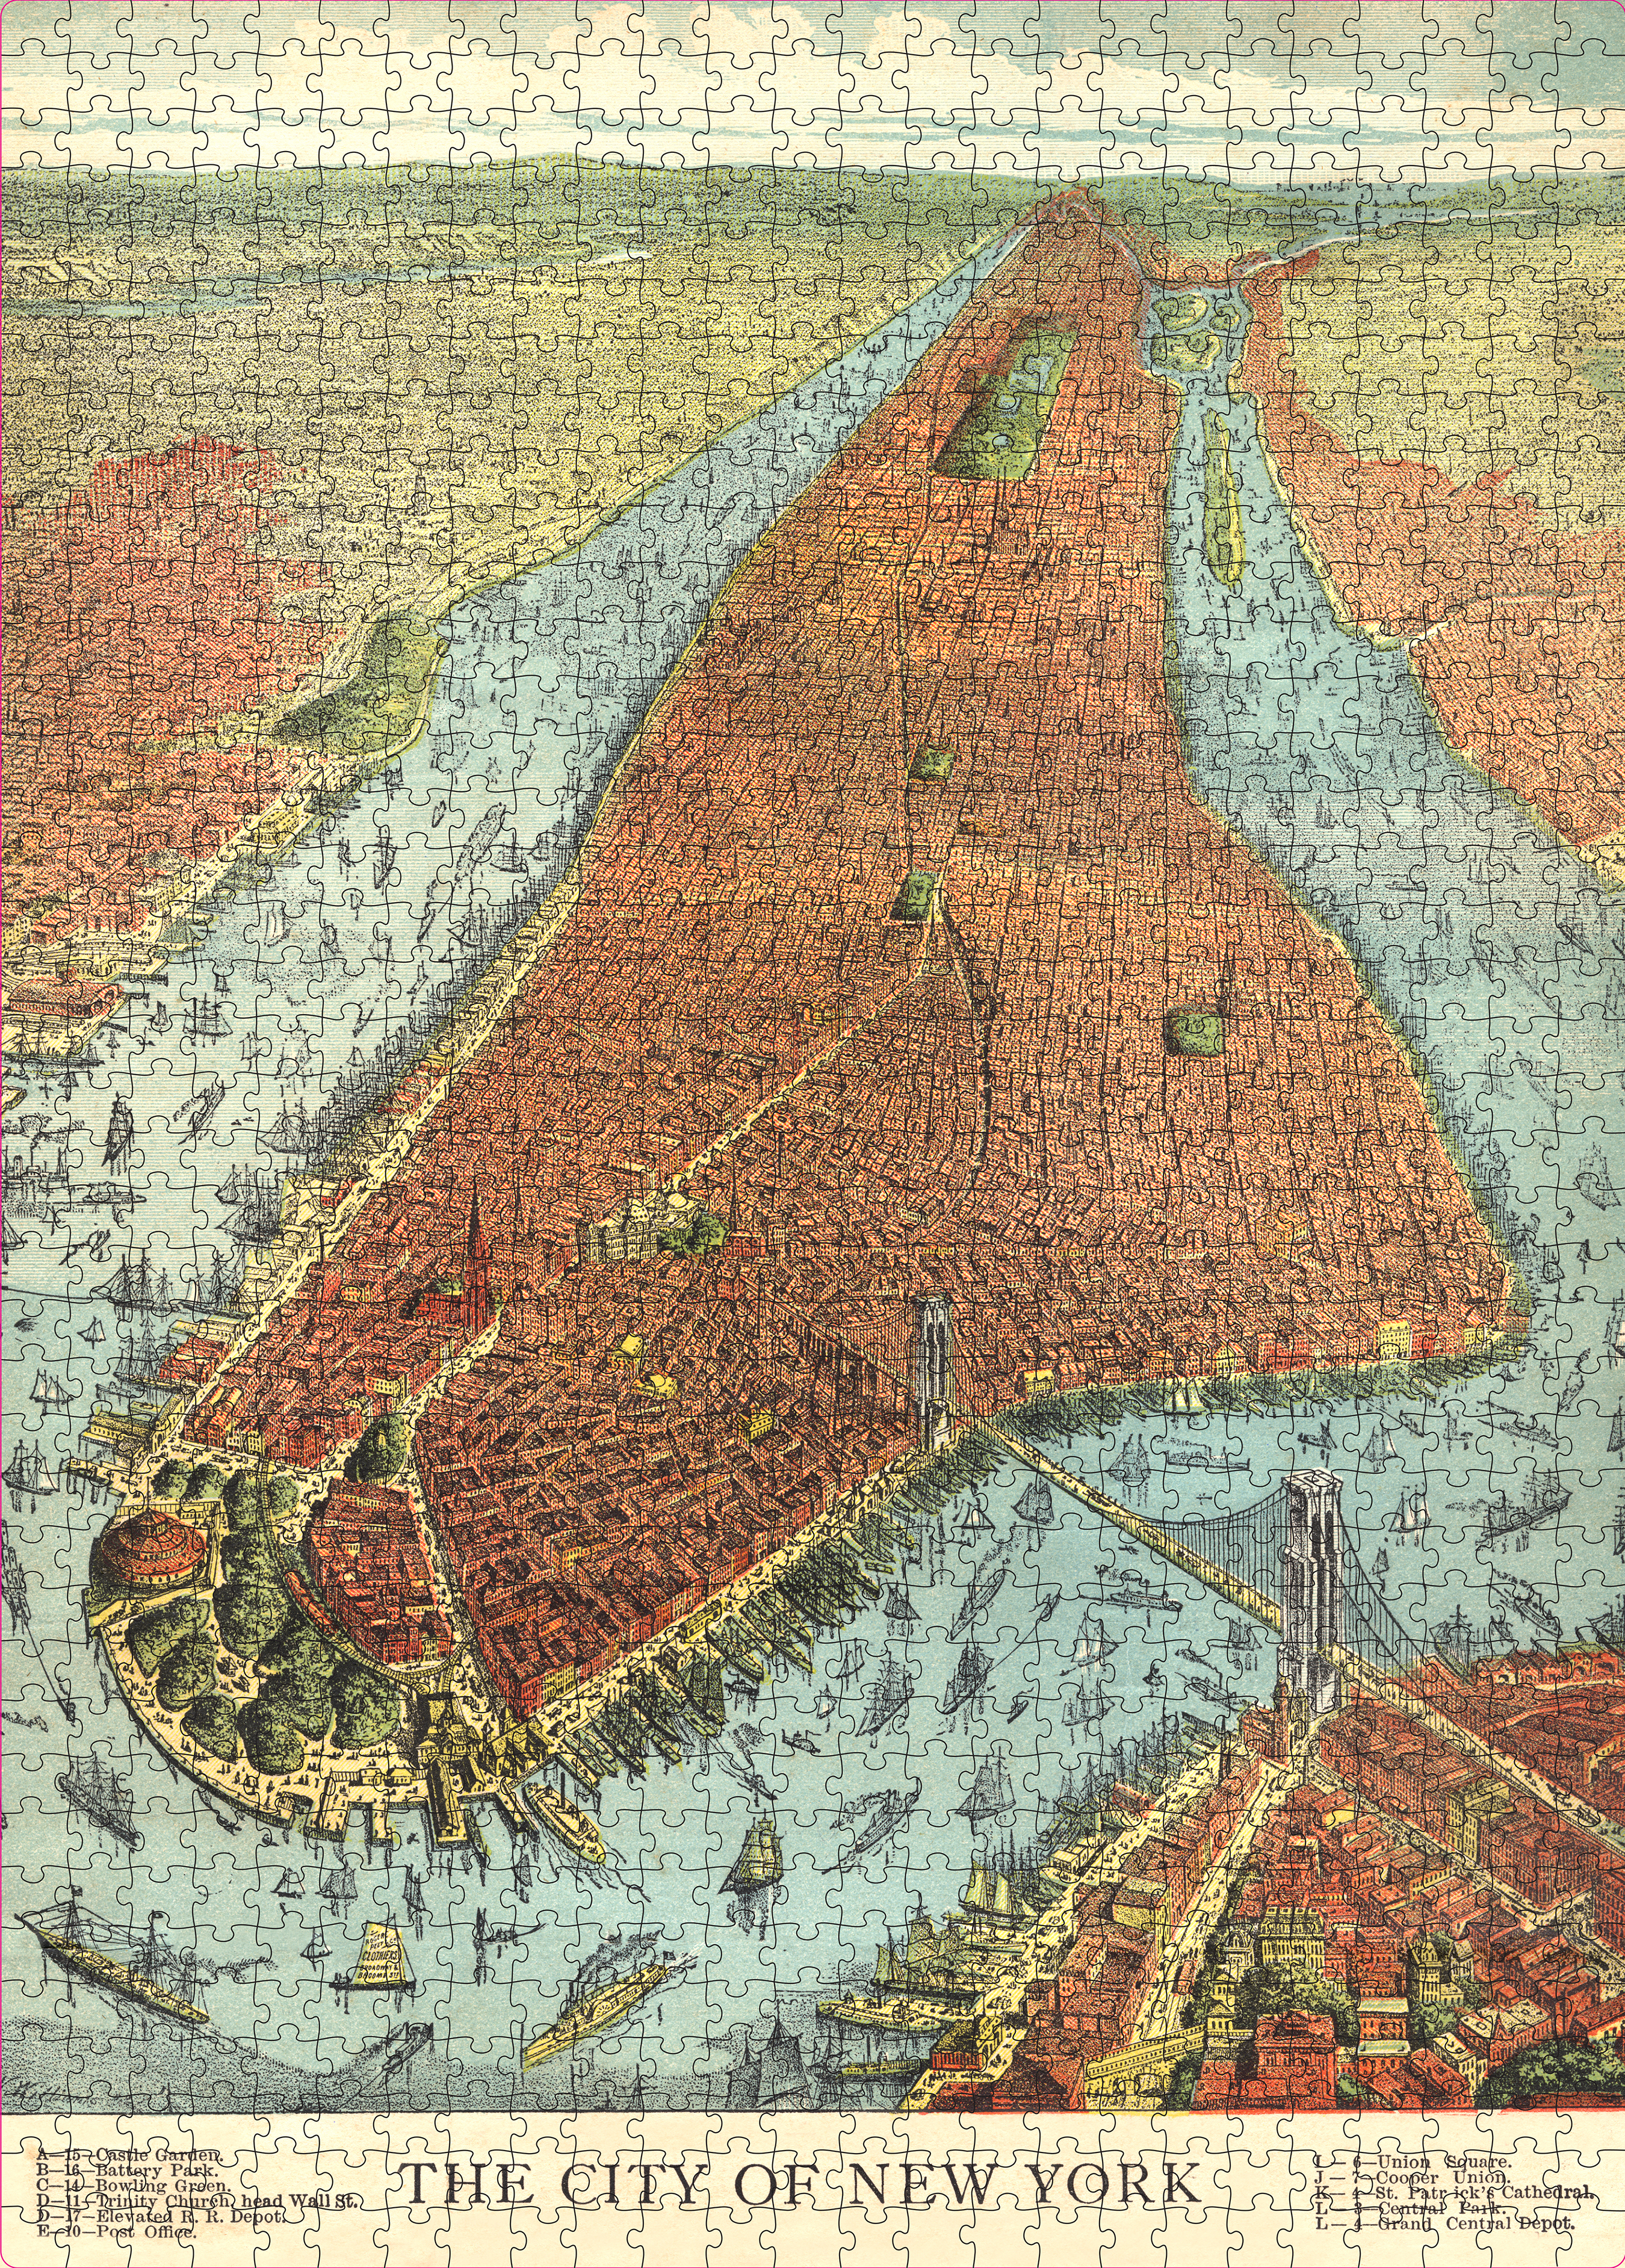 John Derian Paper Goods: The City of New York 750-Piece Puzzle